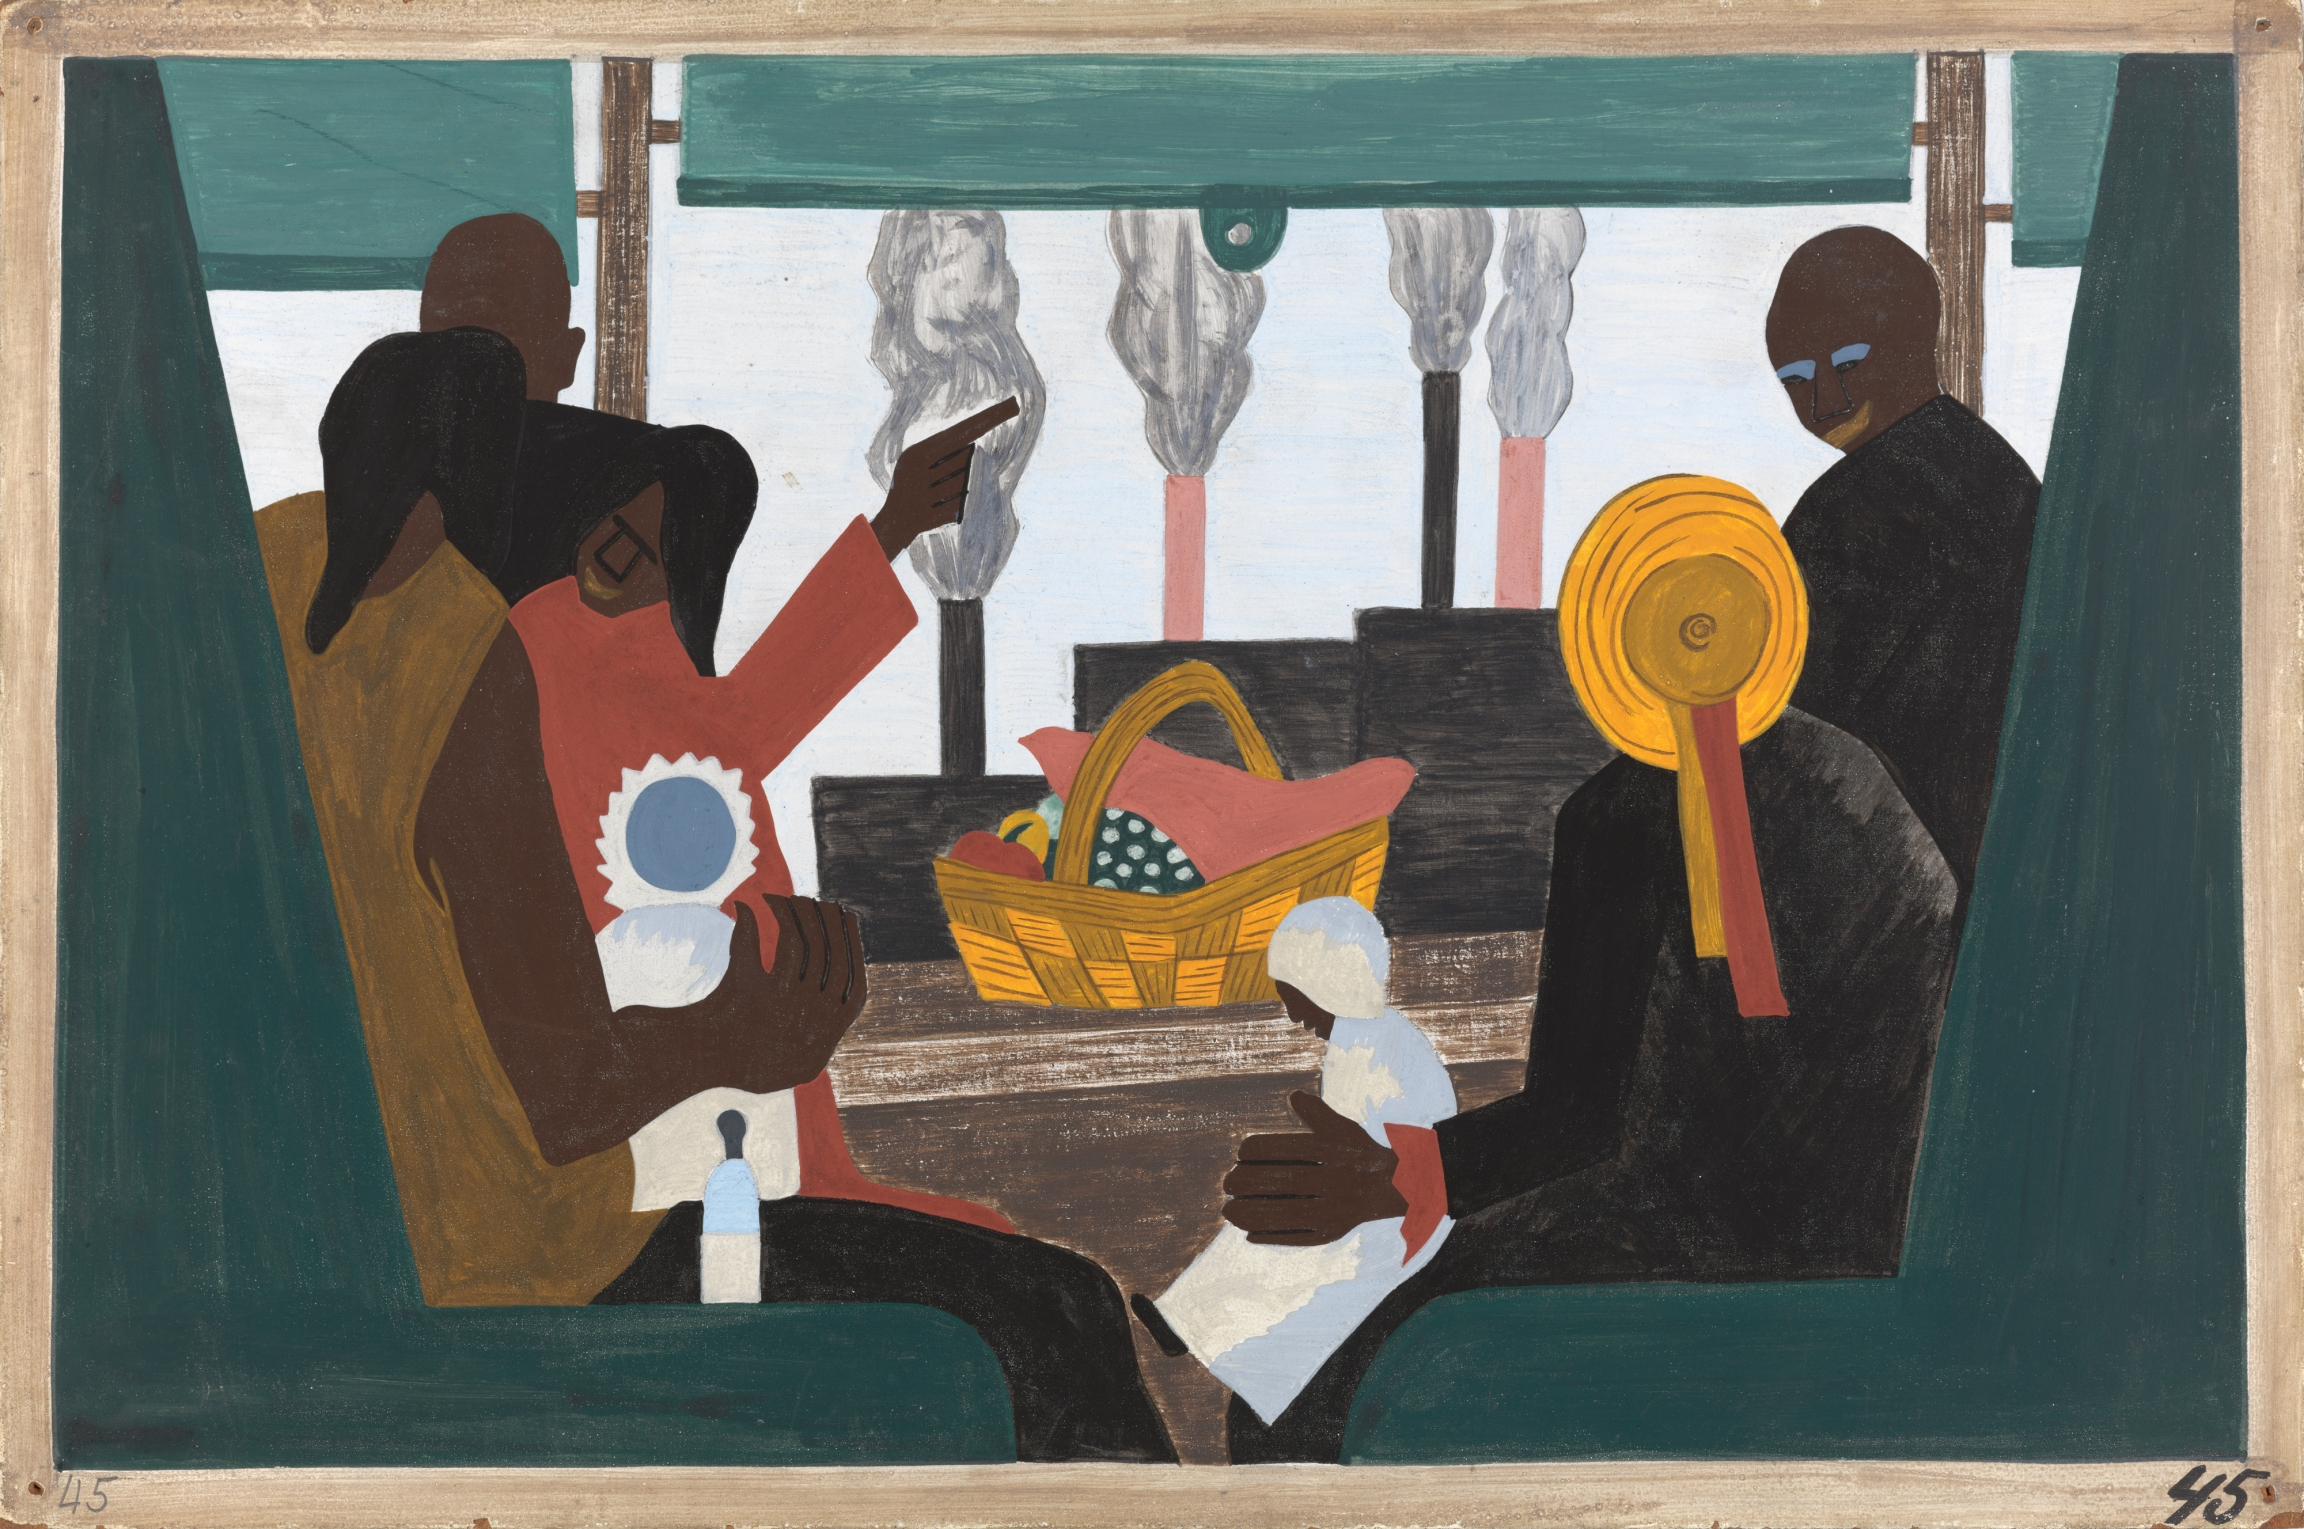 """Jacob Lawrence, """"The Migration Series, Panel no. 45: The migrants arrived in Pittsburgh, one of the great industrial centers of the North.,"""" 1940–41. Casein tempera on hardboard, 12 x 18 in."""